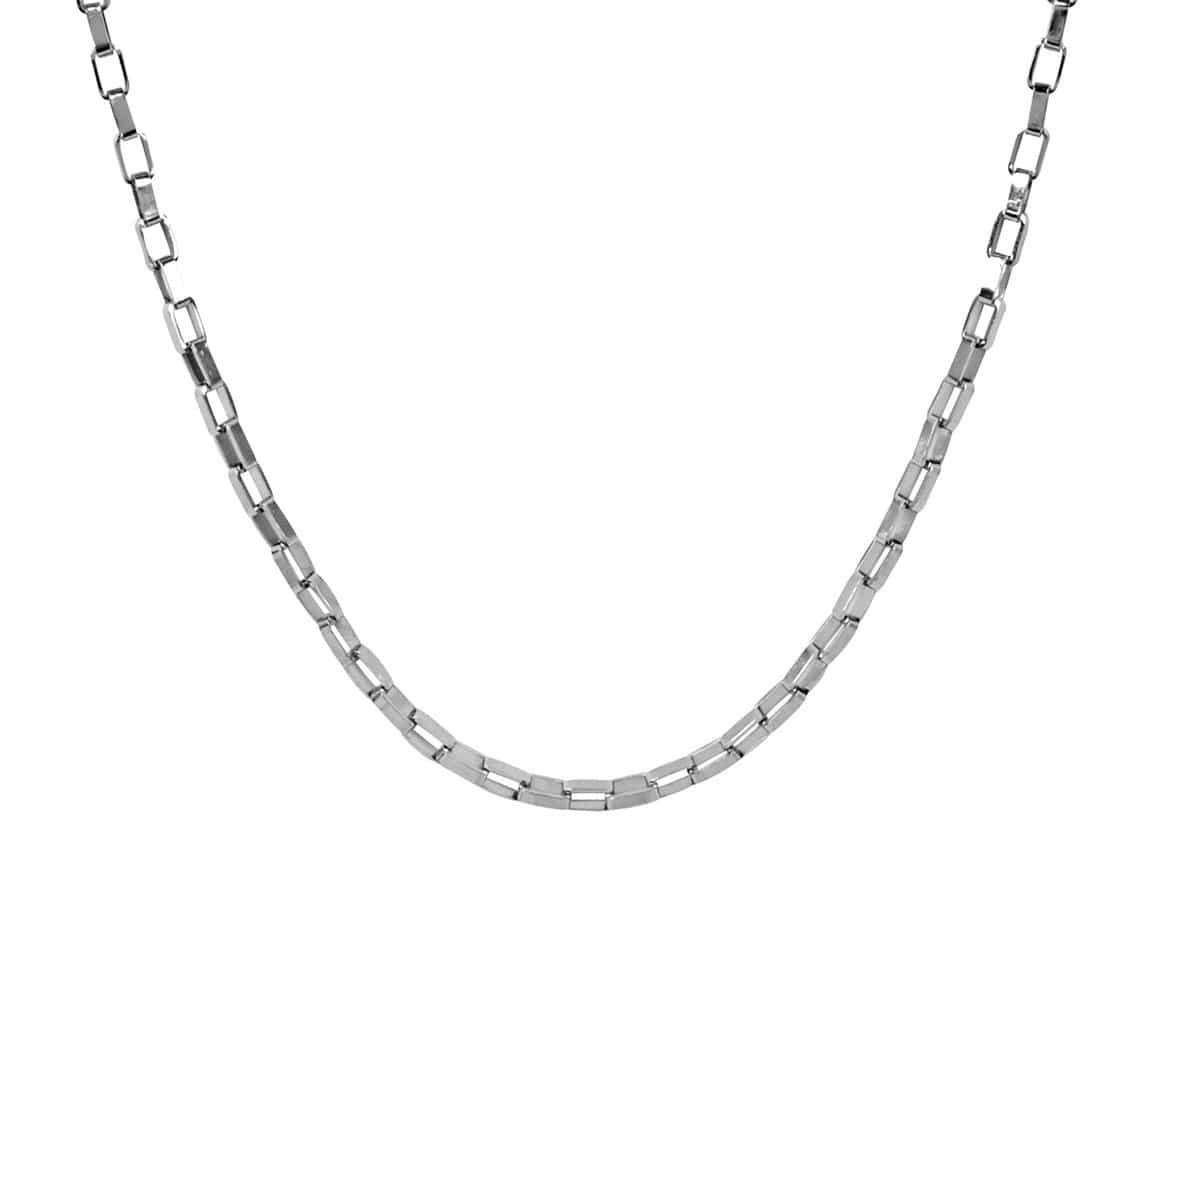 Silver Stainless Steel 3 mm Reflection Box Link Chain Chains